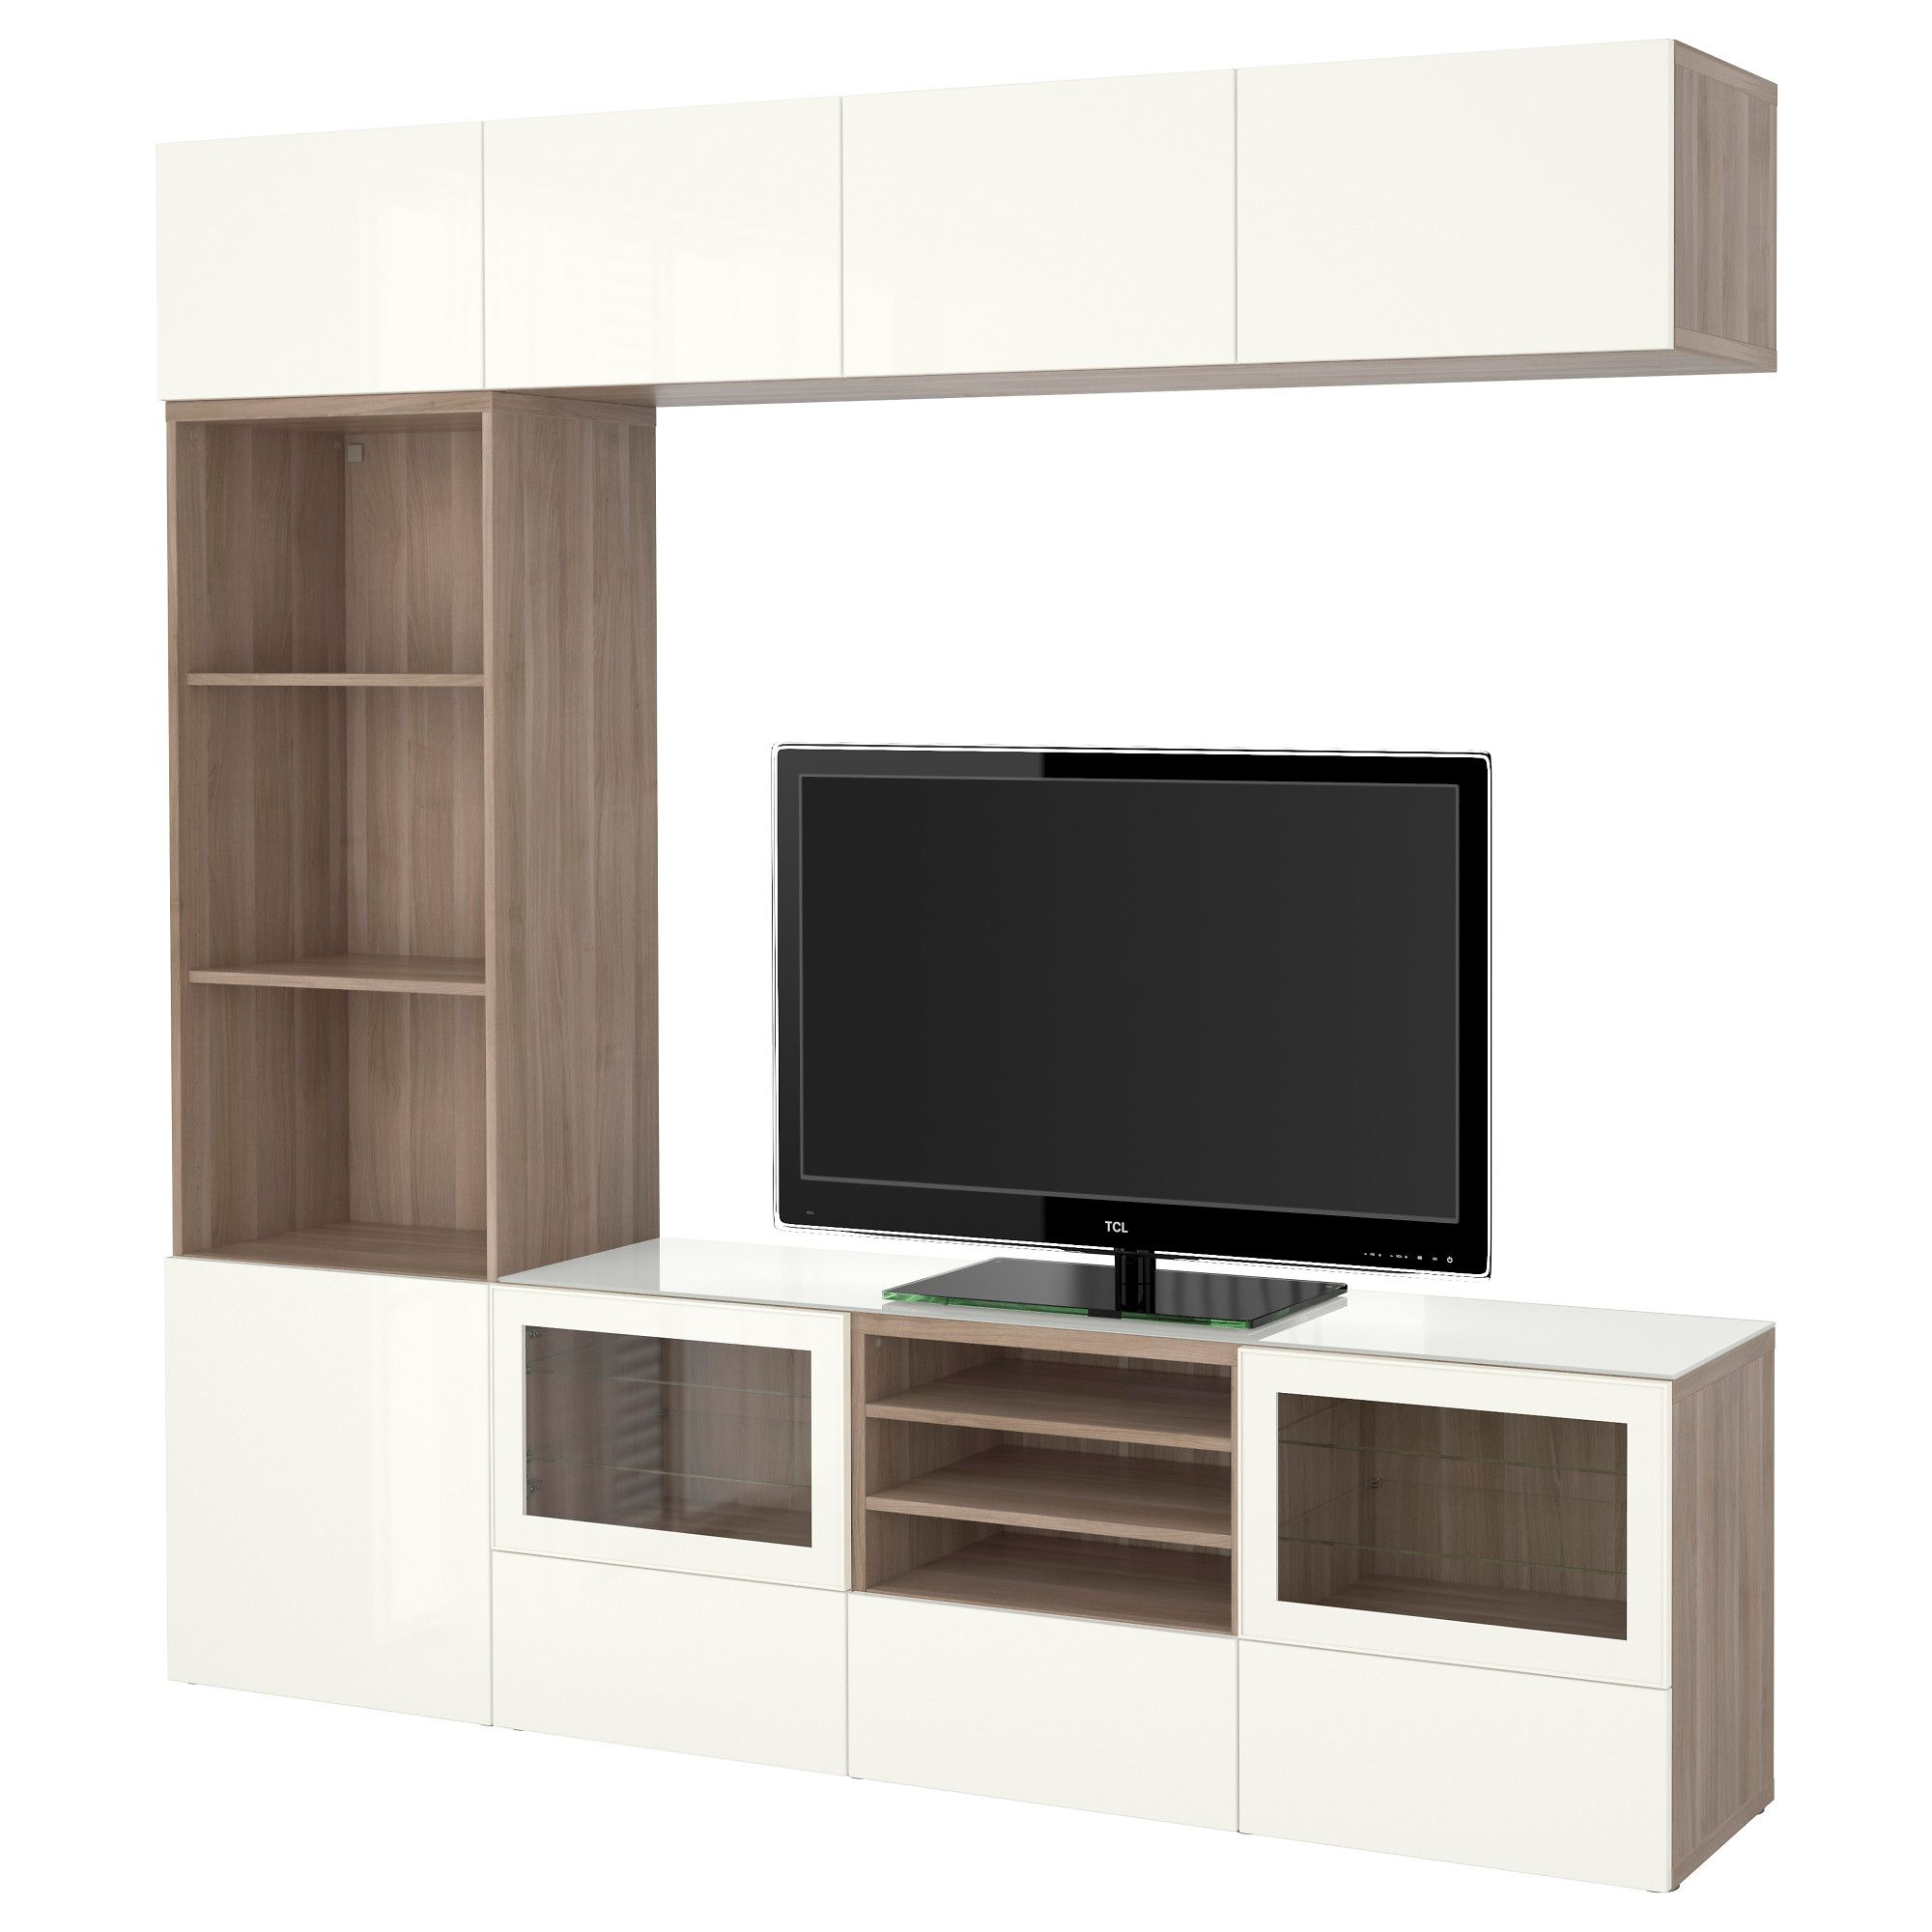 Ikea best tv storage combination glass doors walnut - Ikea estanteria besta ...